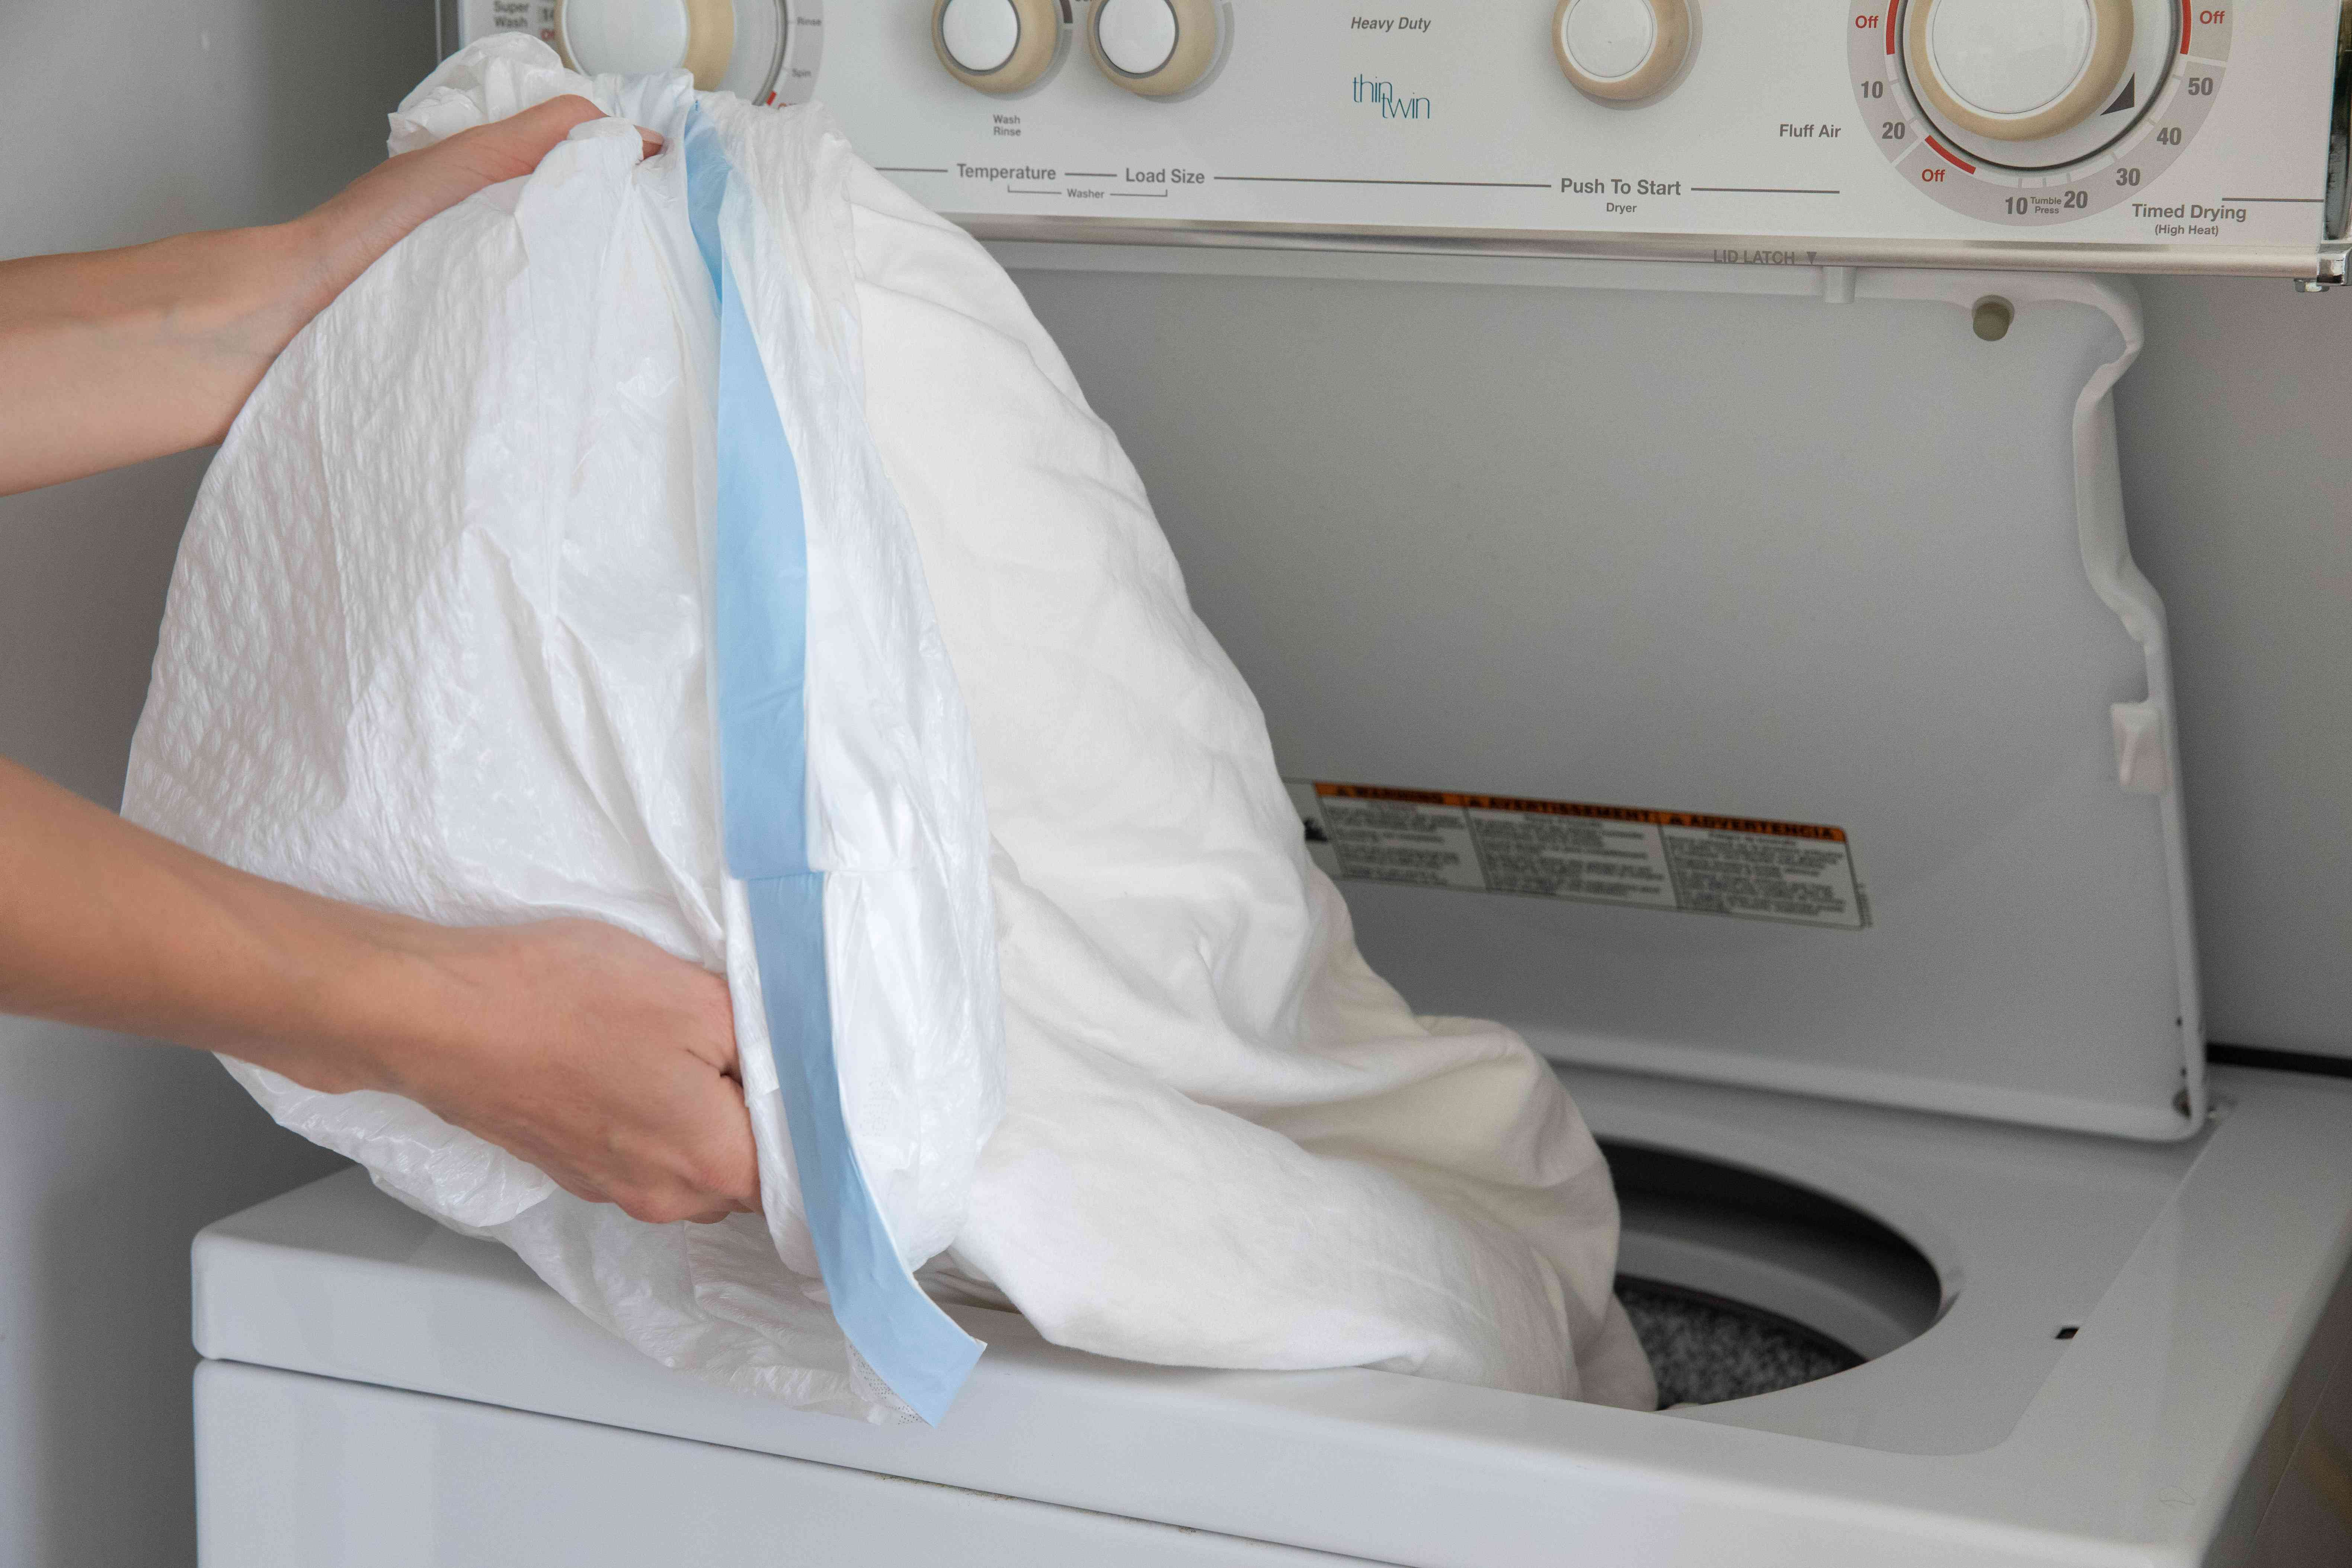 Bug infested clothes in plastic trash bag spilled into washing machine